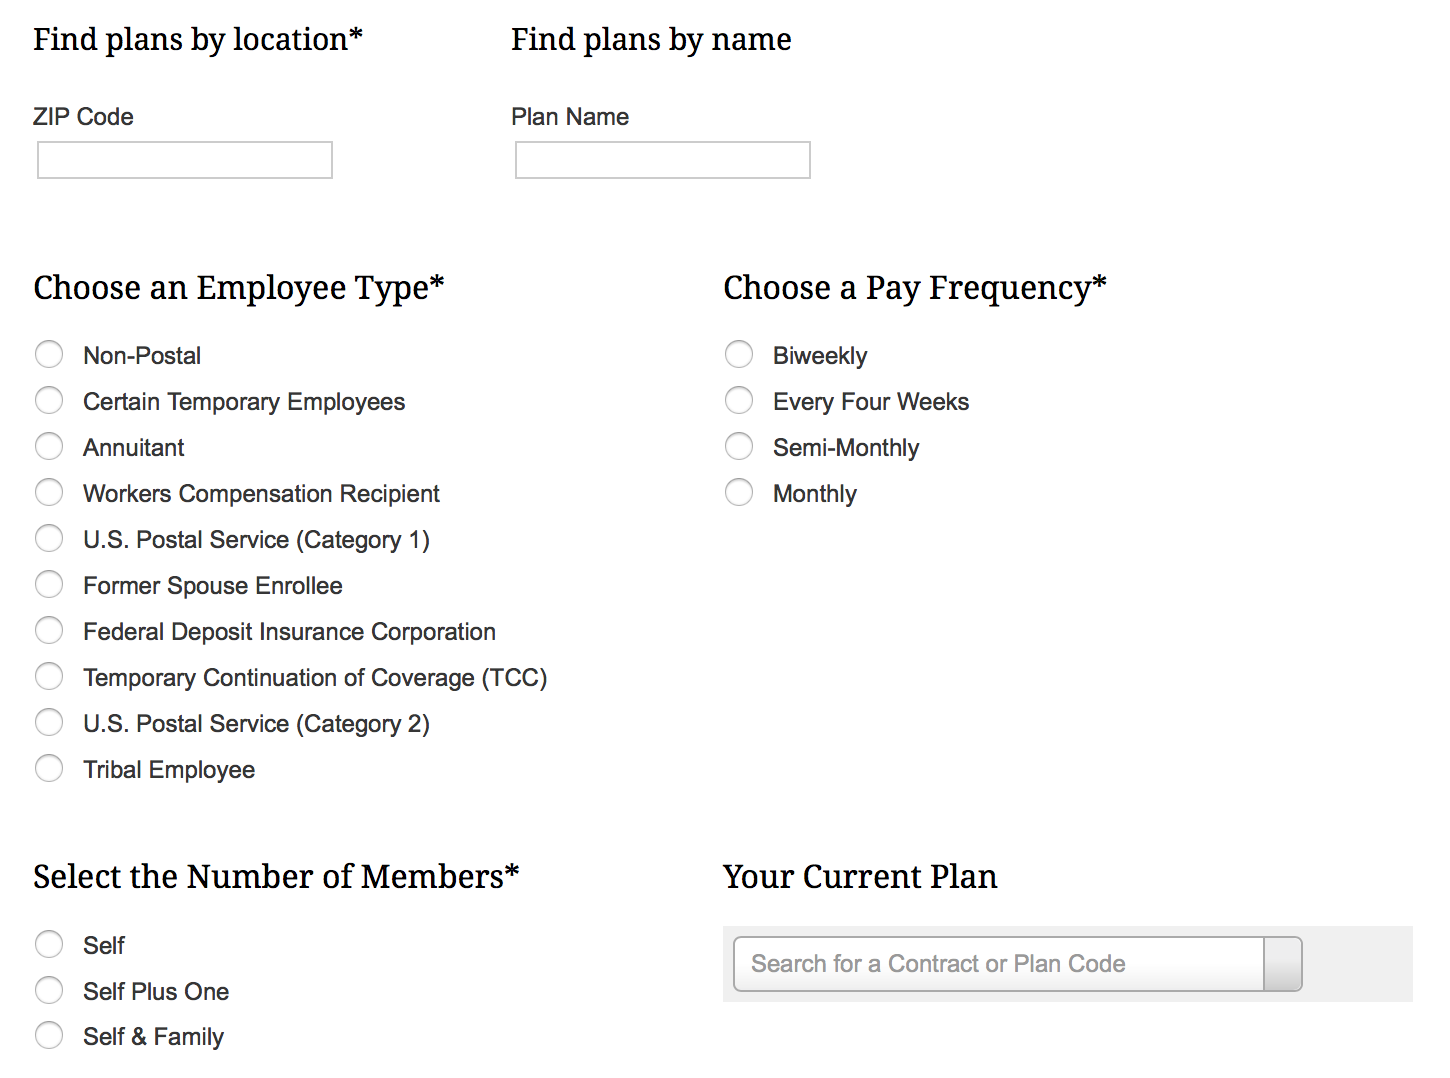 Screenshot showing the initial search form for OPM's FEHB plan comparison tool